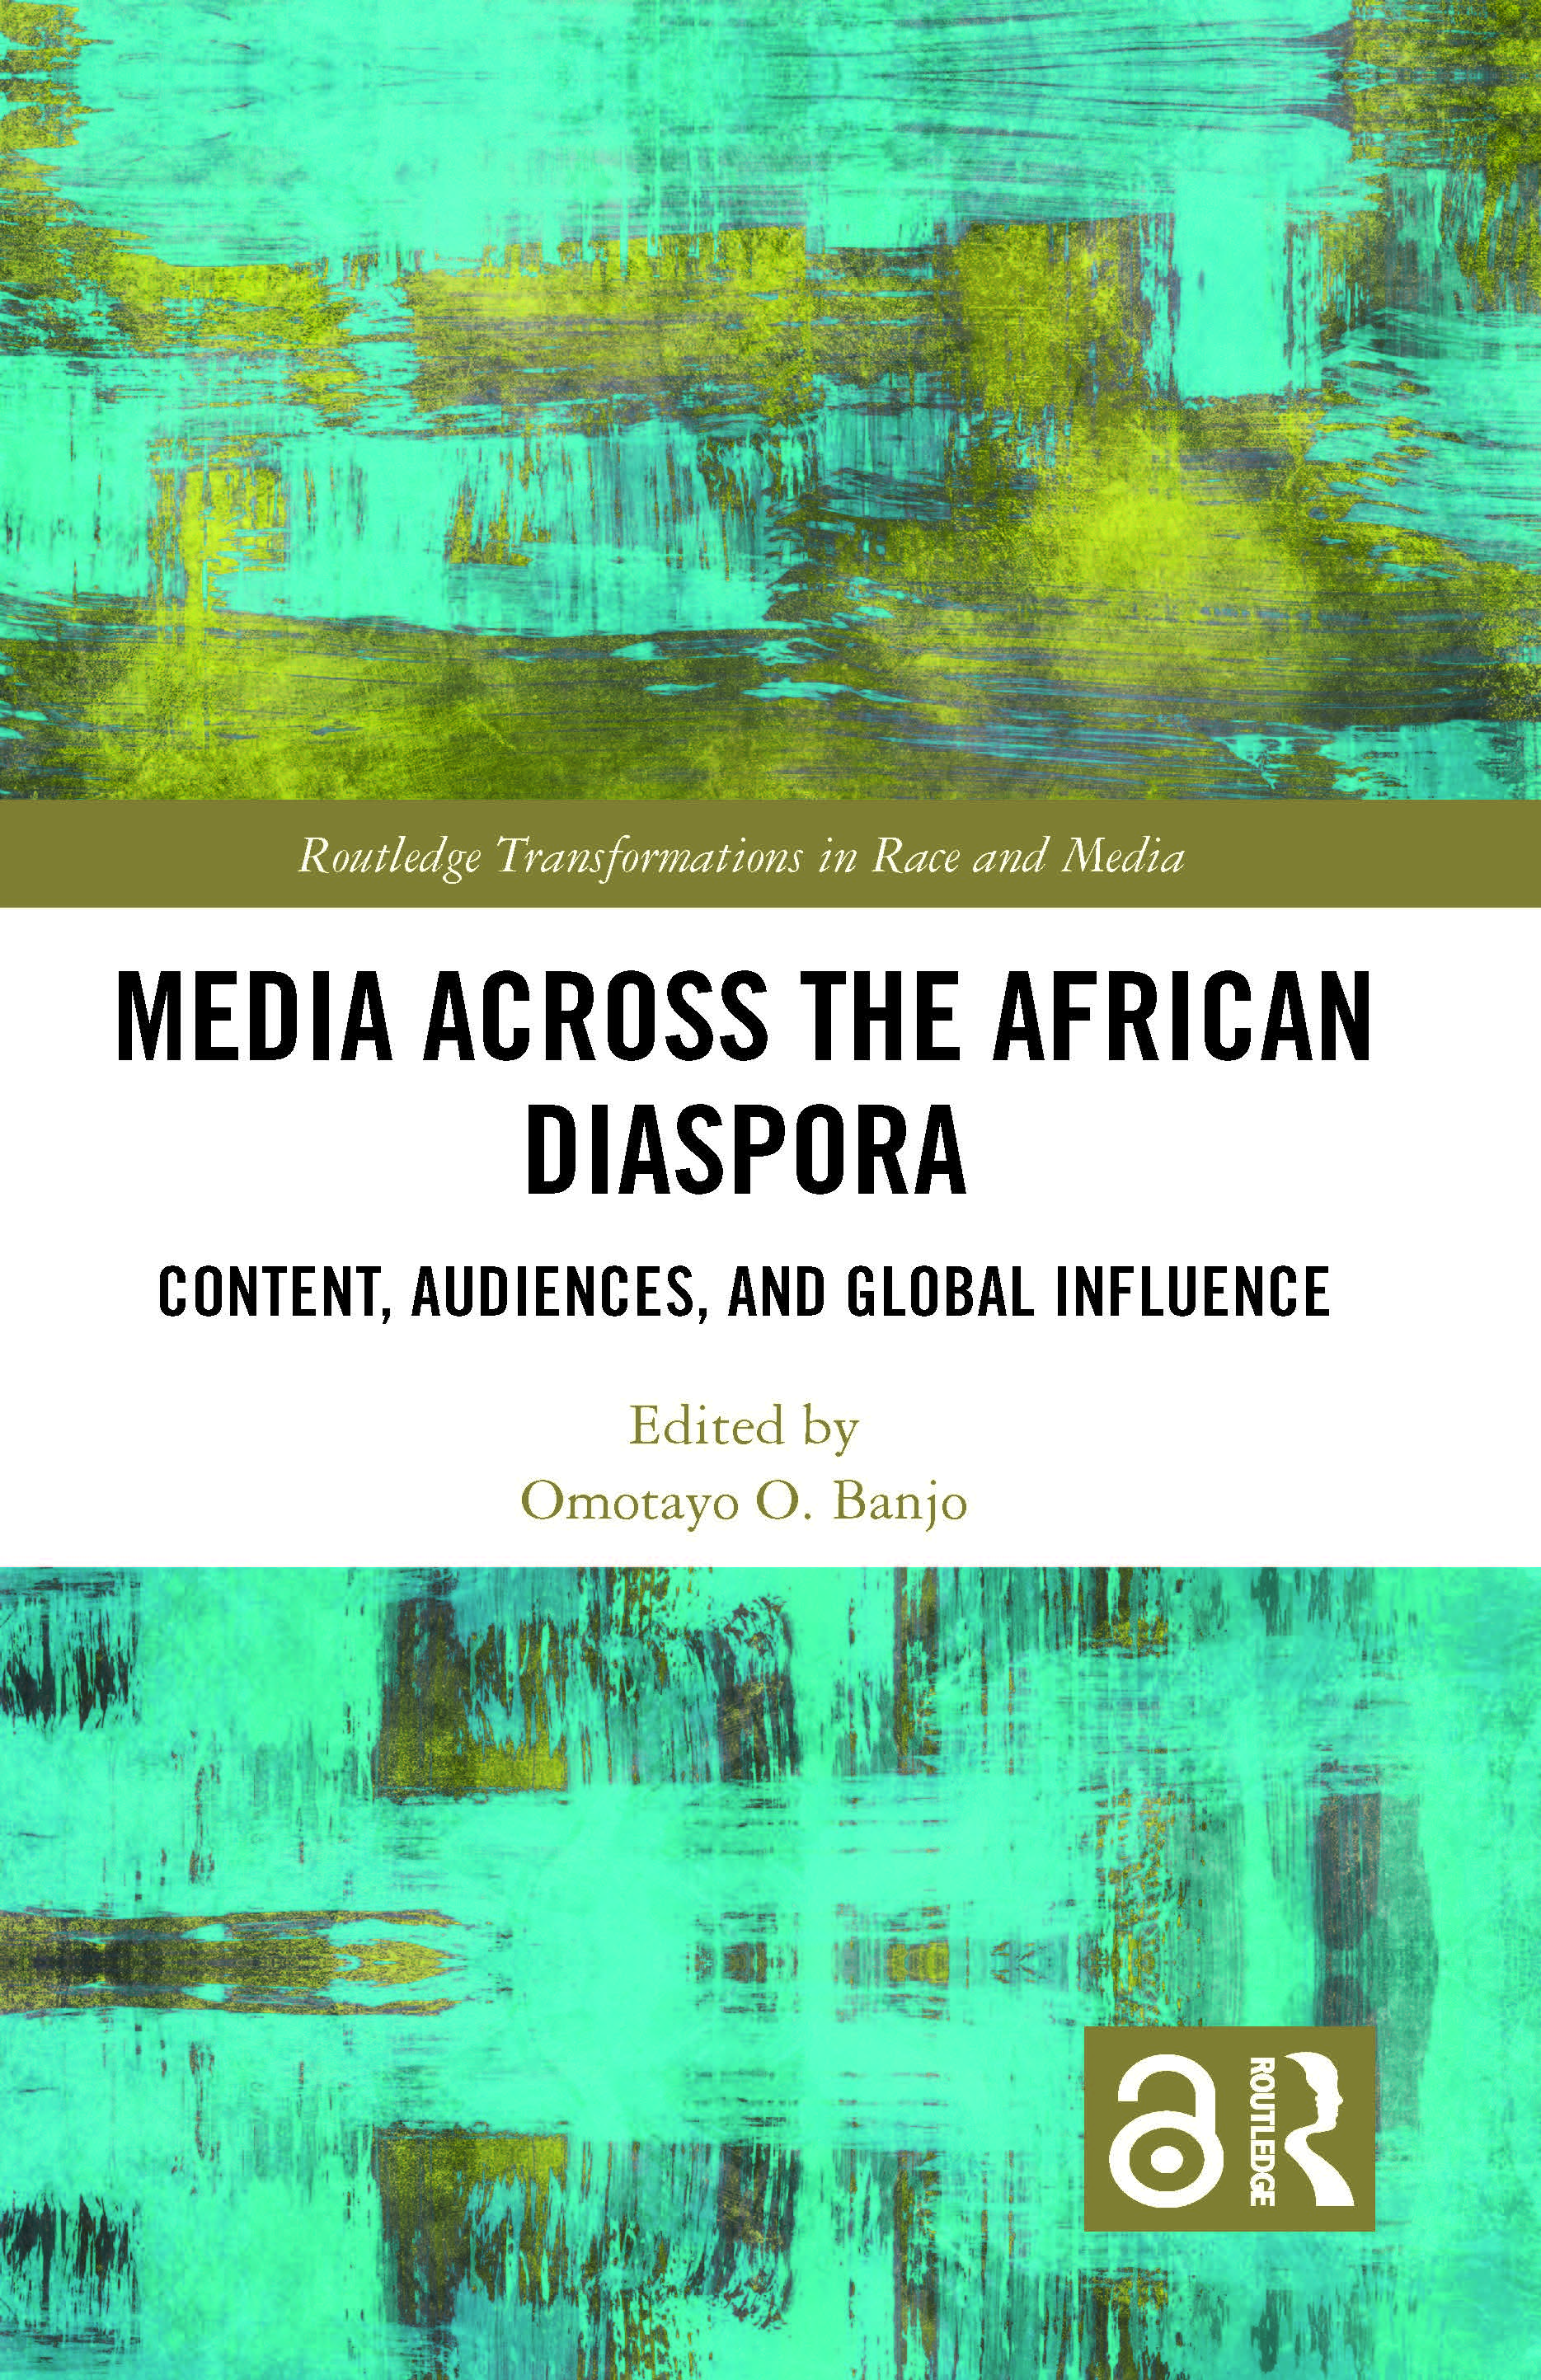 Media Across the African Diaspora: Content, Audiences, and Influence book cover